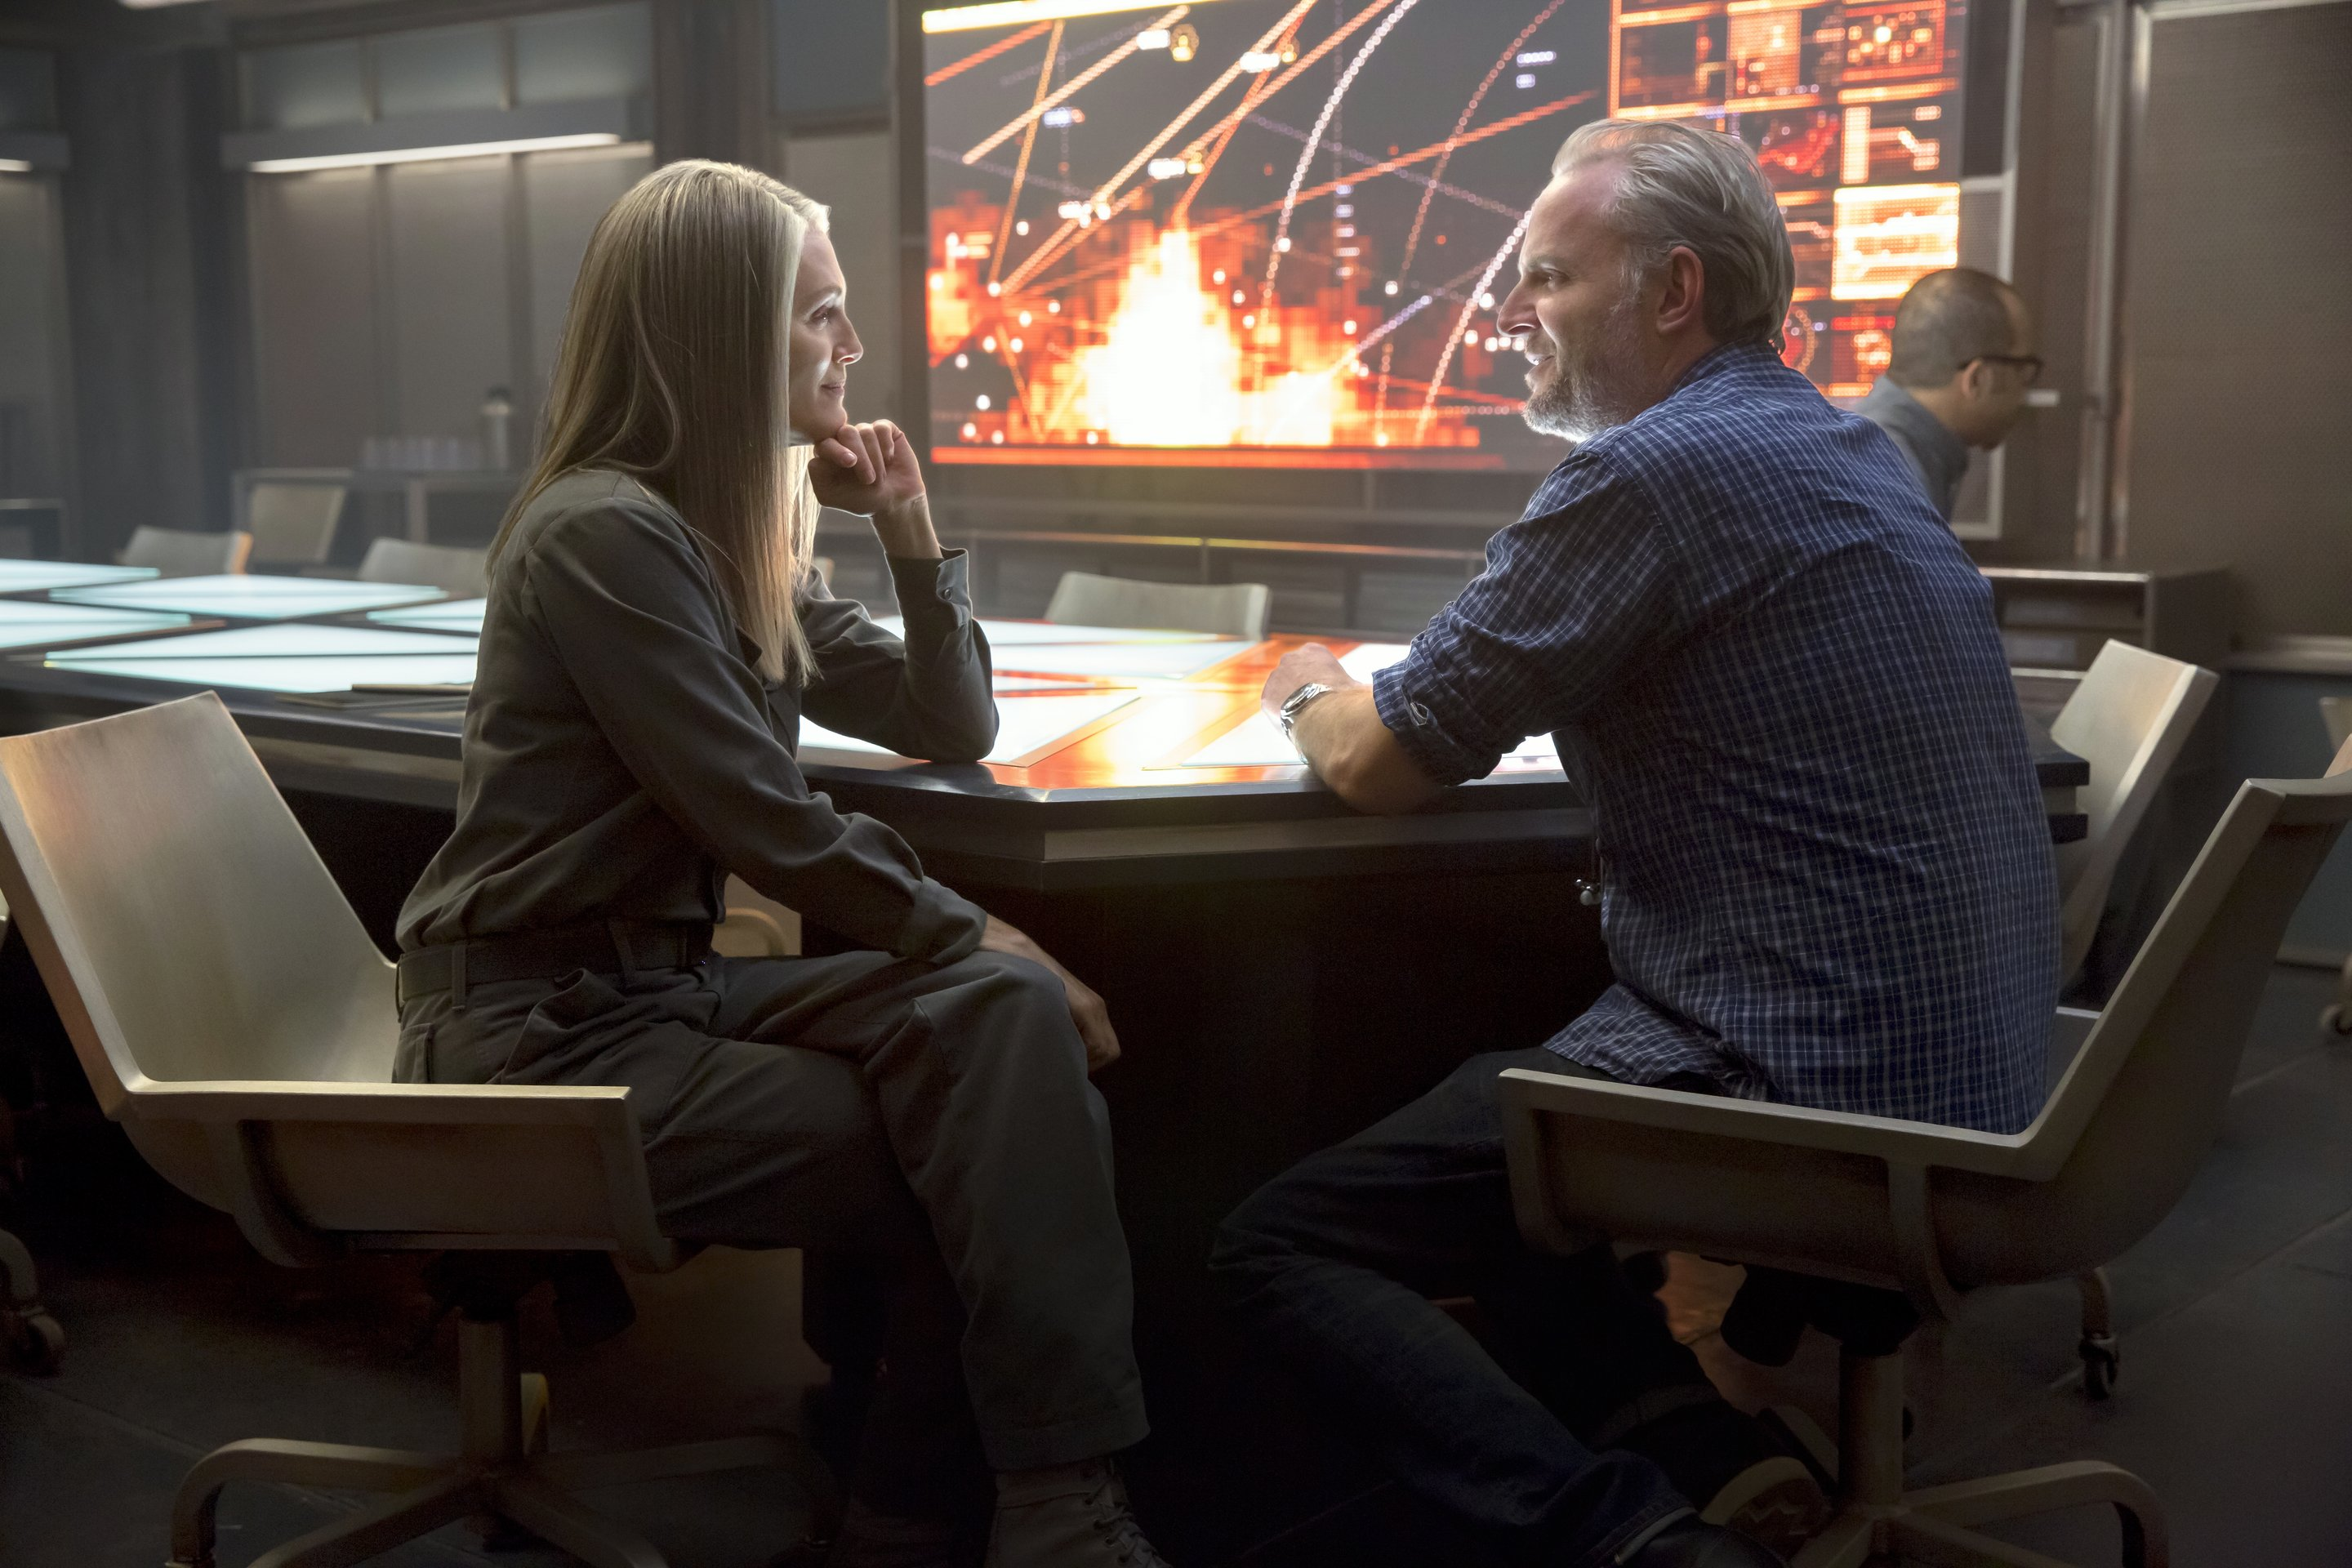 ... First The Hunger Games: Mockingjay – willhelm hill williamhill wette auf indien Part 1 Trailer | Nerdophiles